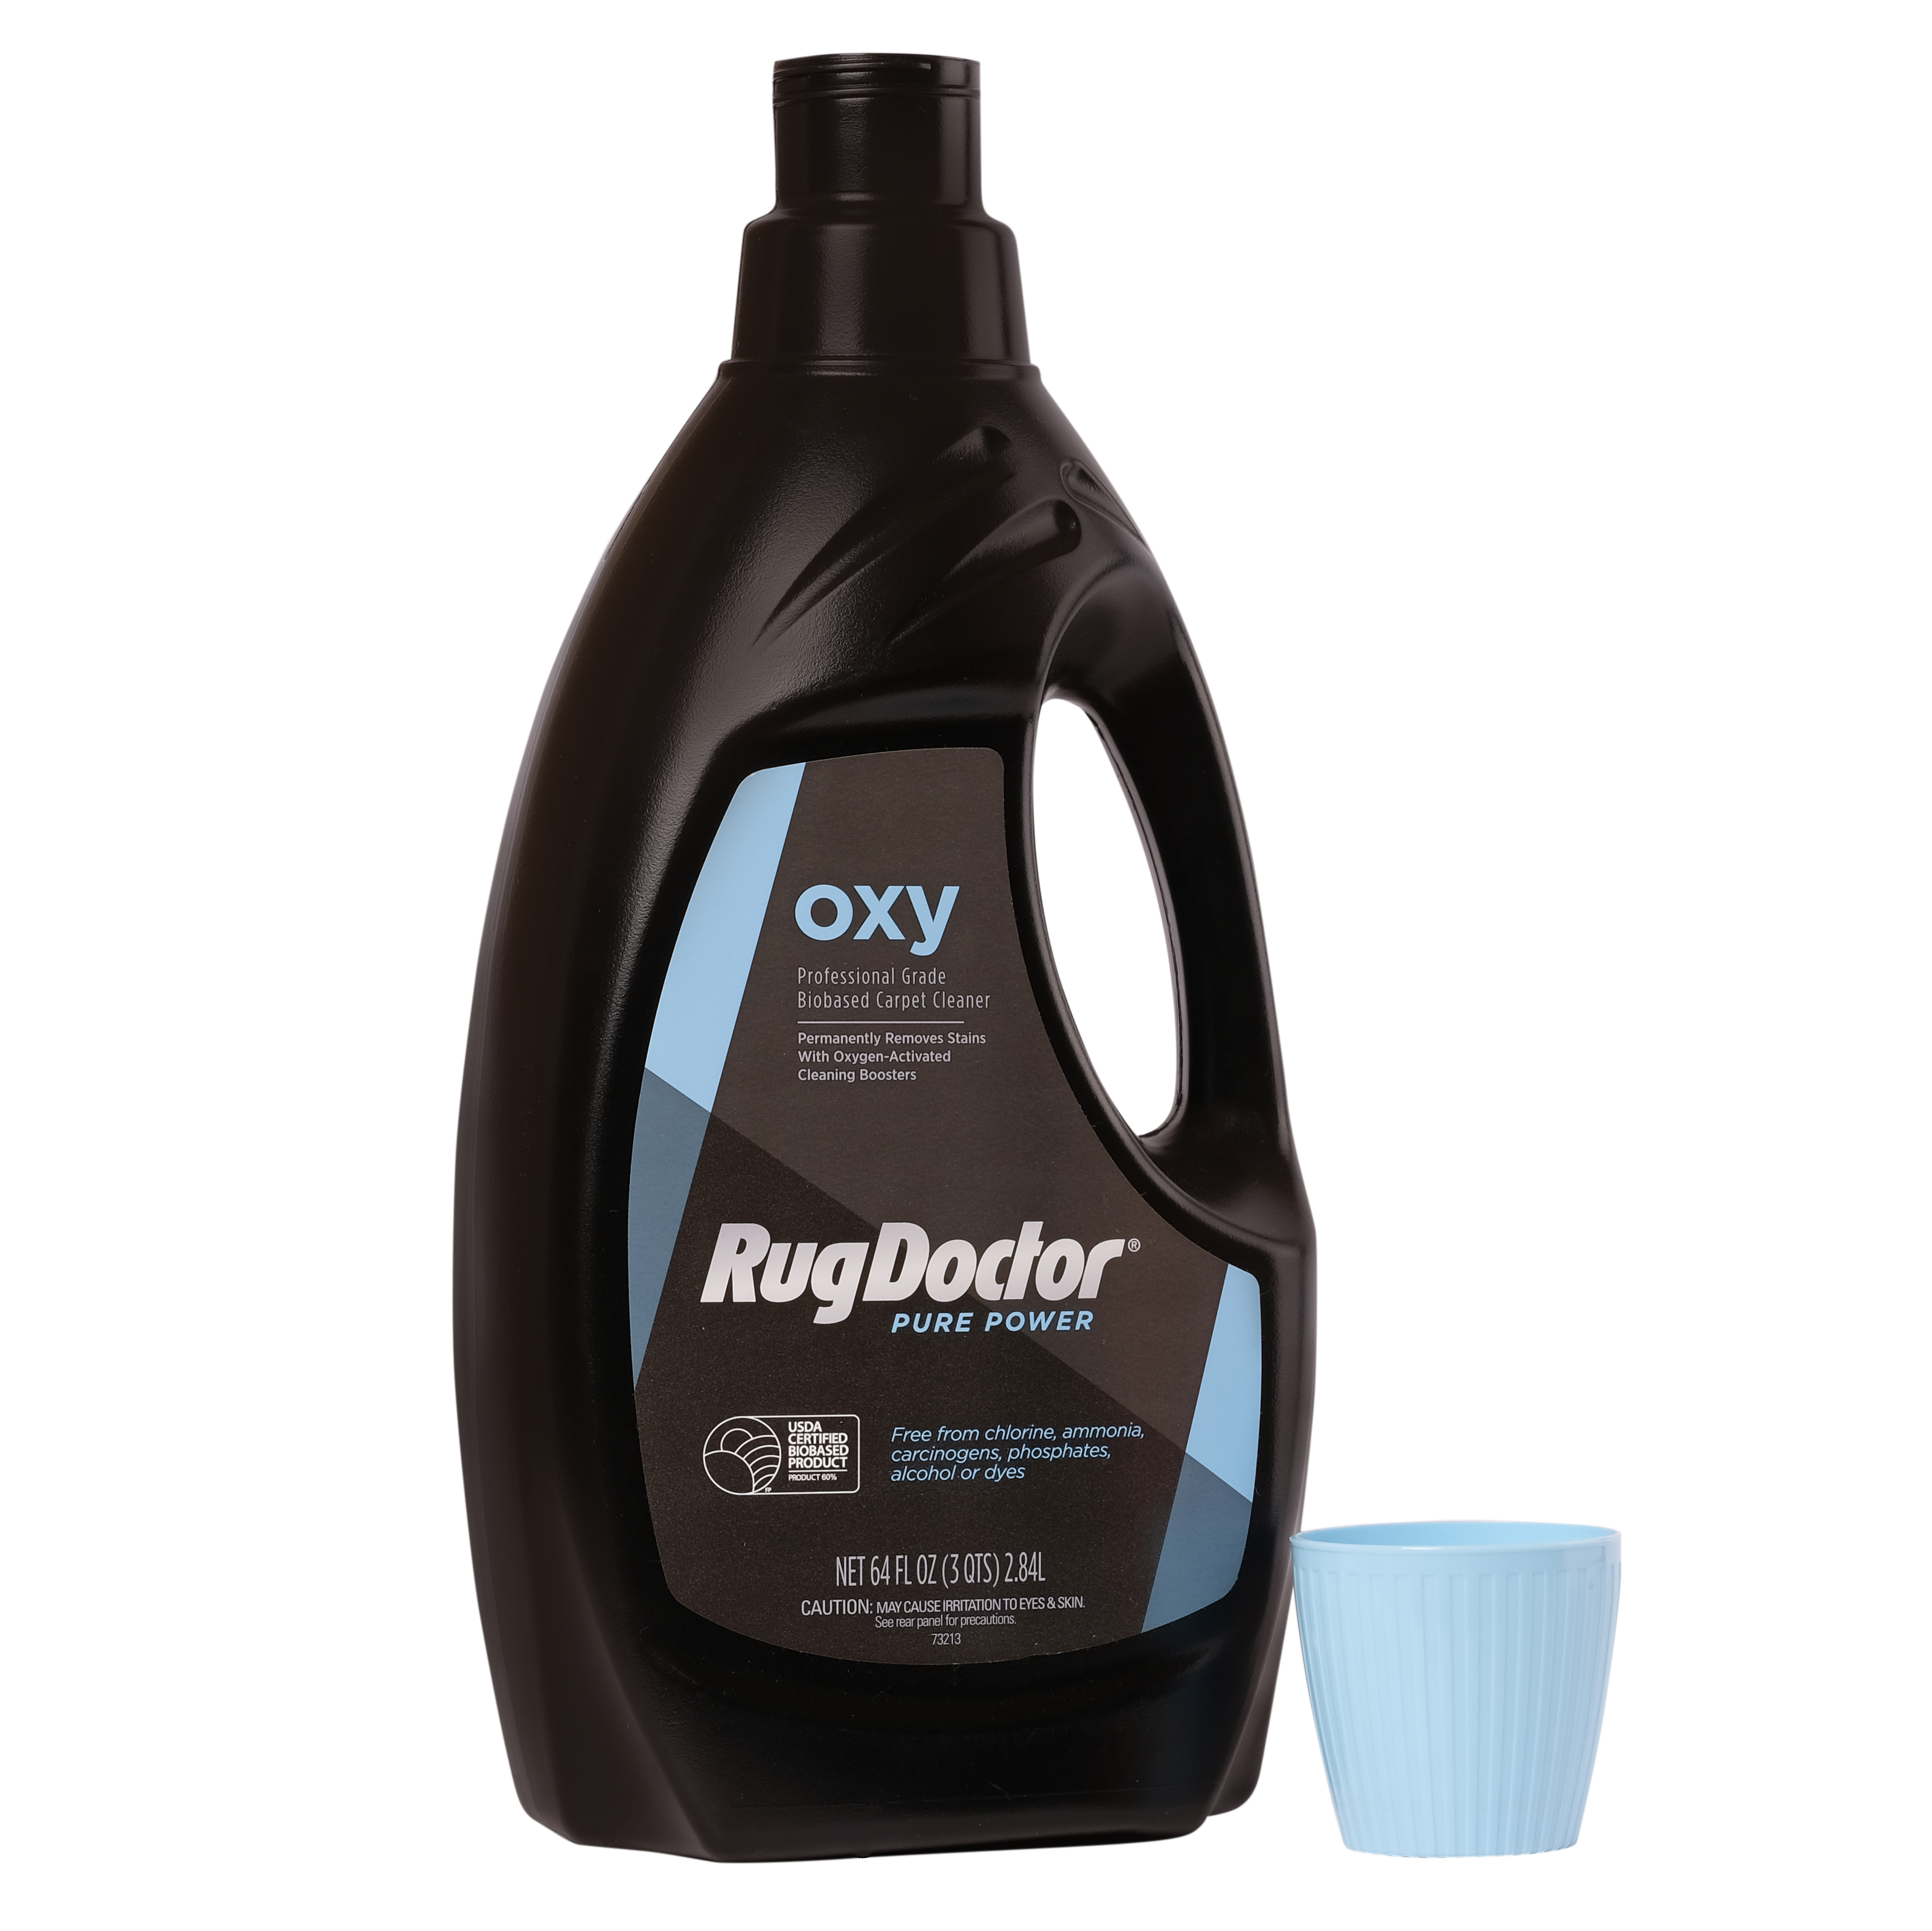 Rug Doctor Pure Power Carpet and Upholstery Cleaner with Powerful Oxygen-Activated Cleaning Boosters; Eco-Friendly Mindfully Blended Bio-based Formula Targets Tough Stains in Home and Office; 64 oz.